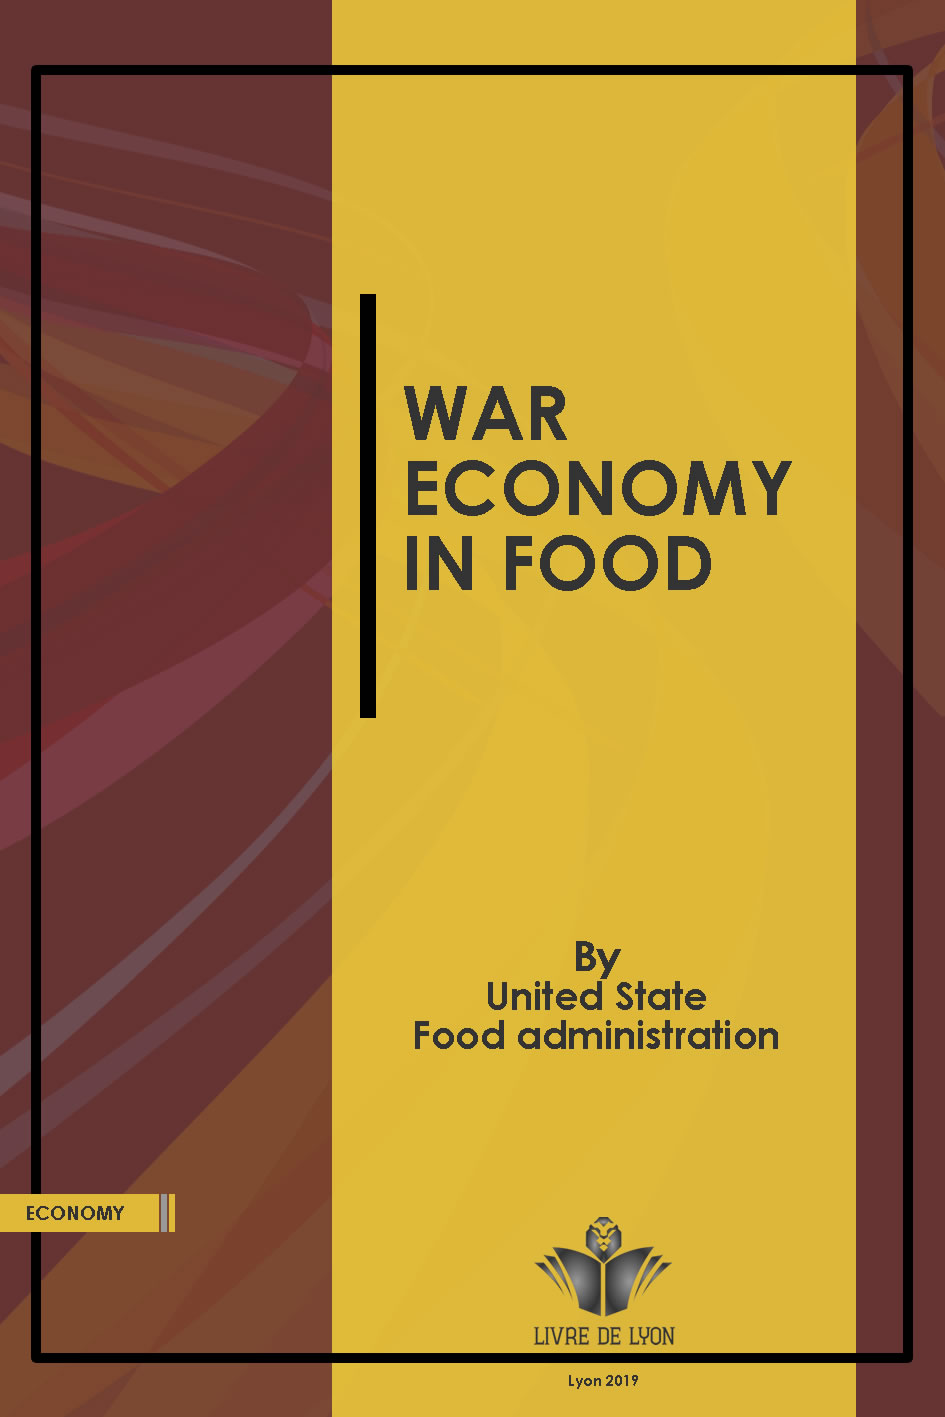 War Economy in Fodd With Suggestions and Recipes for Substitutions in the Planning of Meals